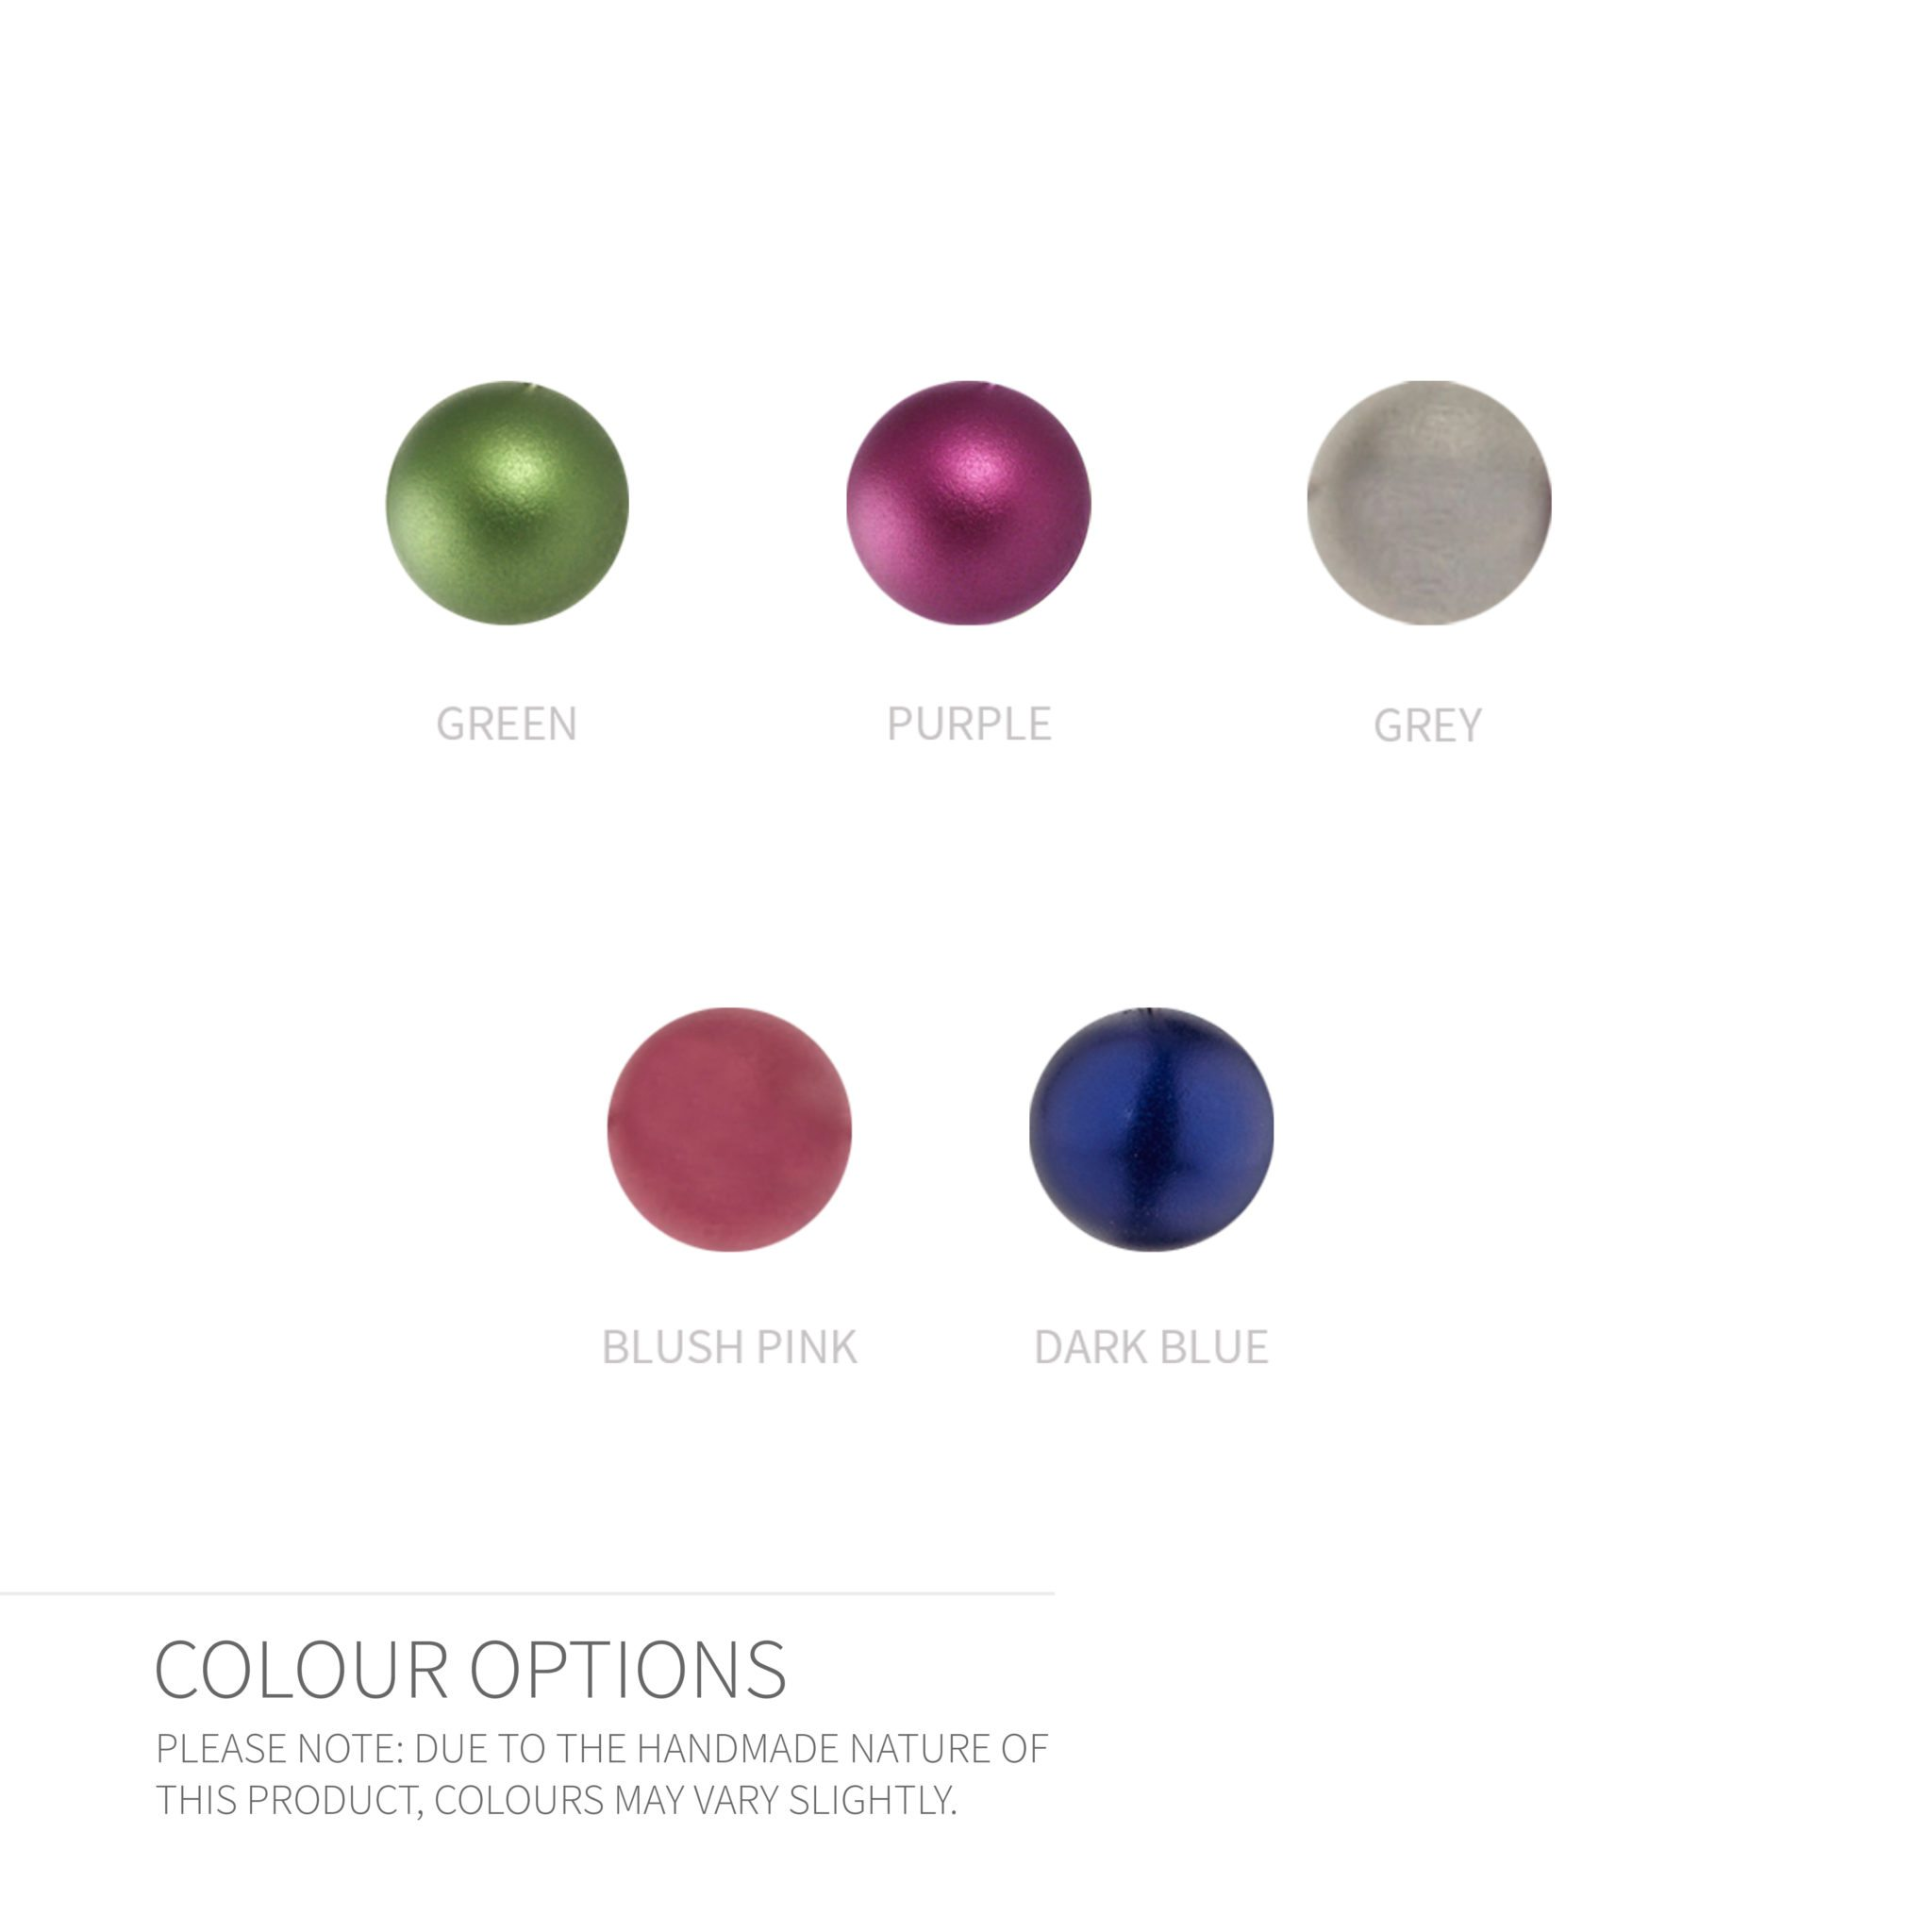 Apero colour options